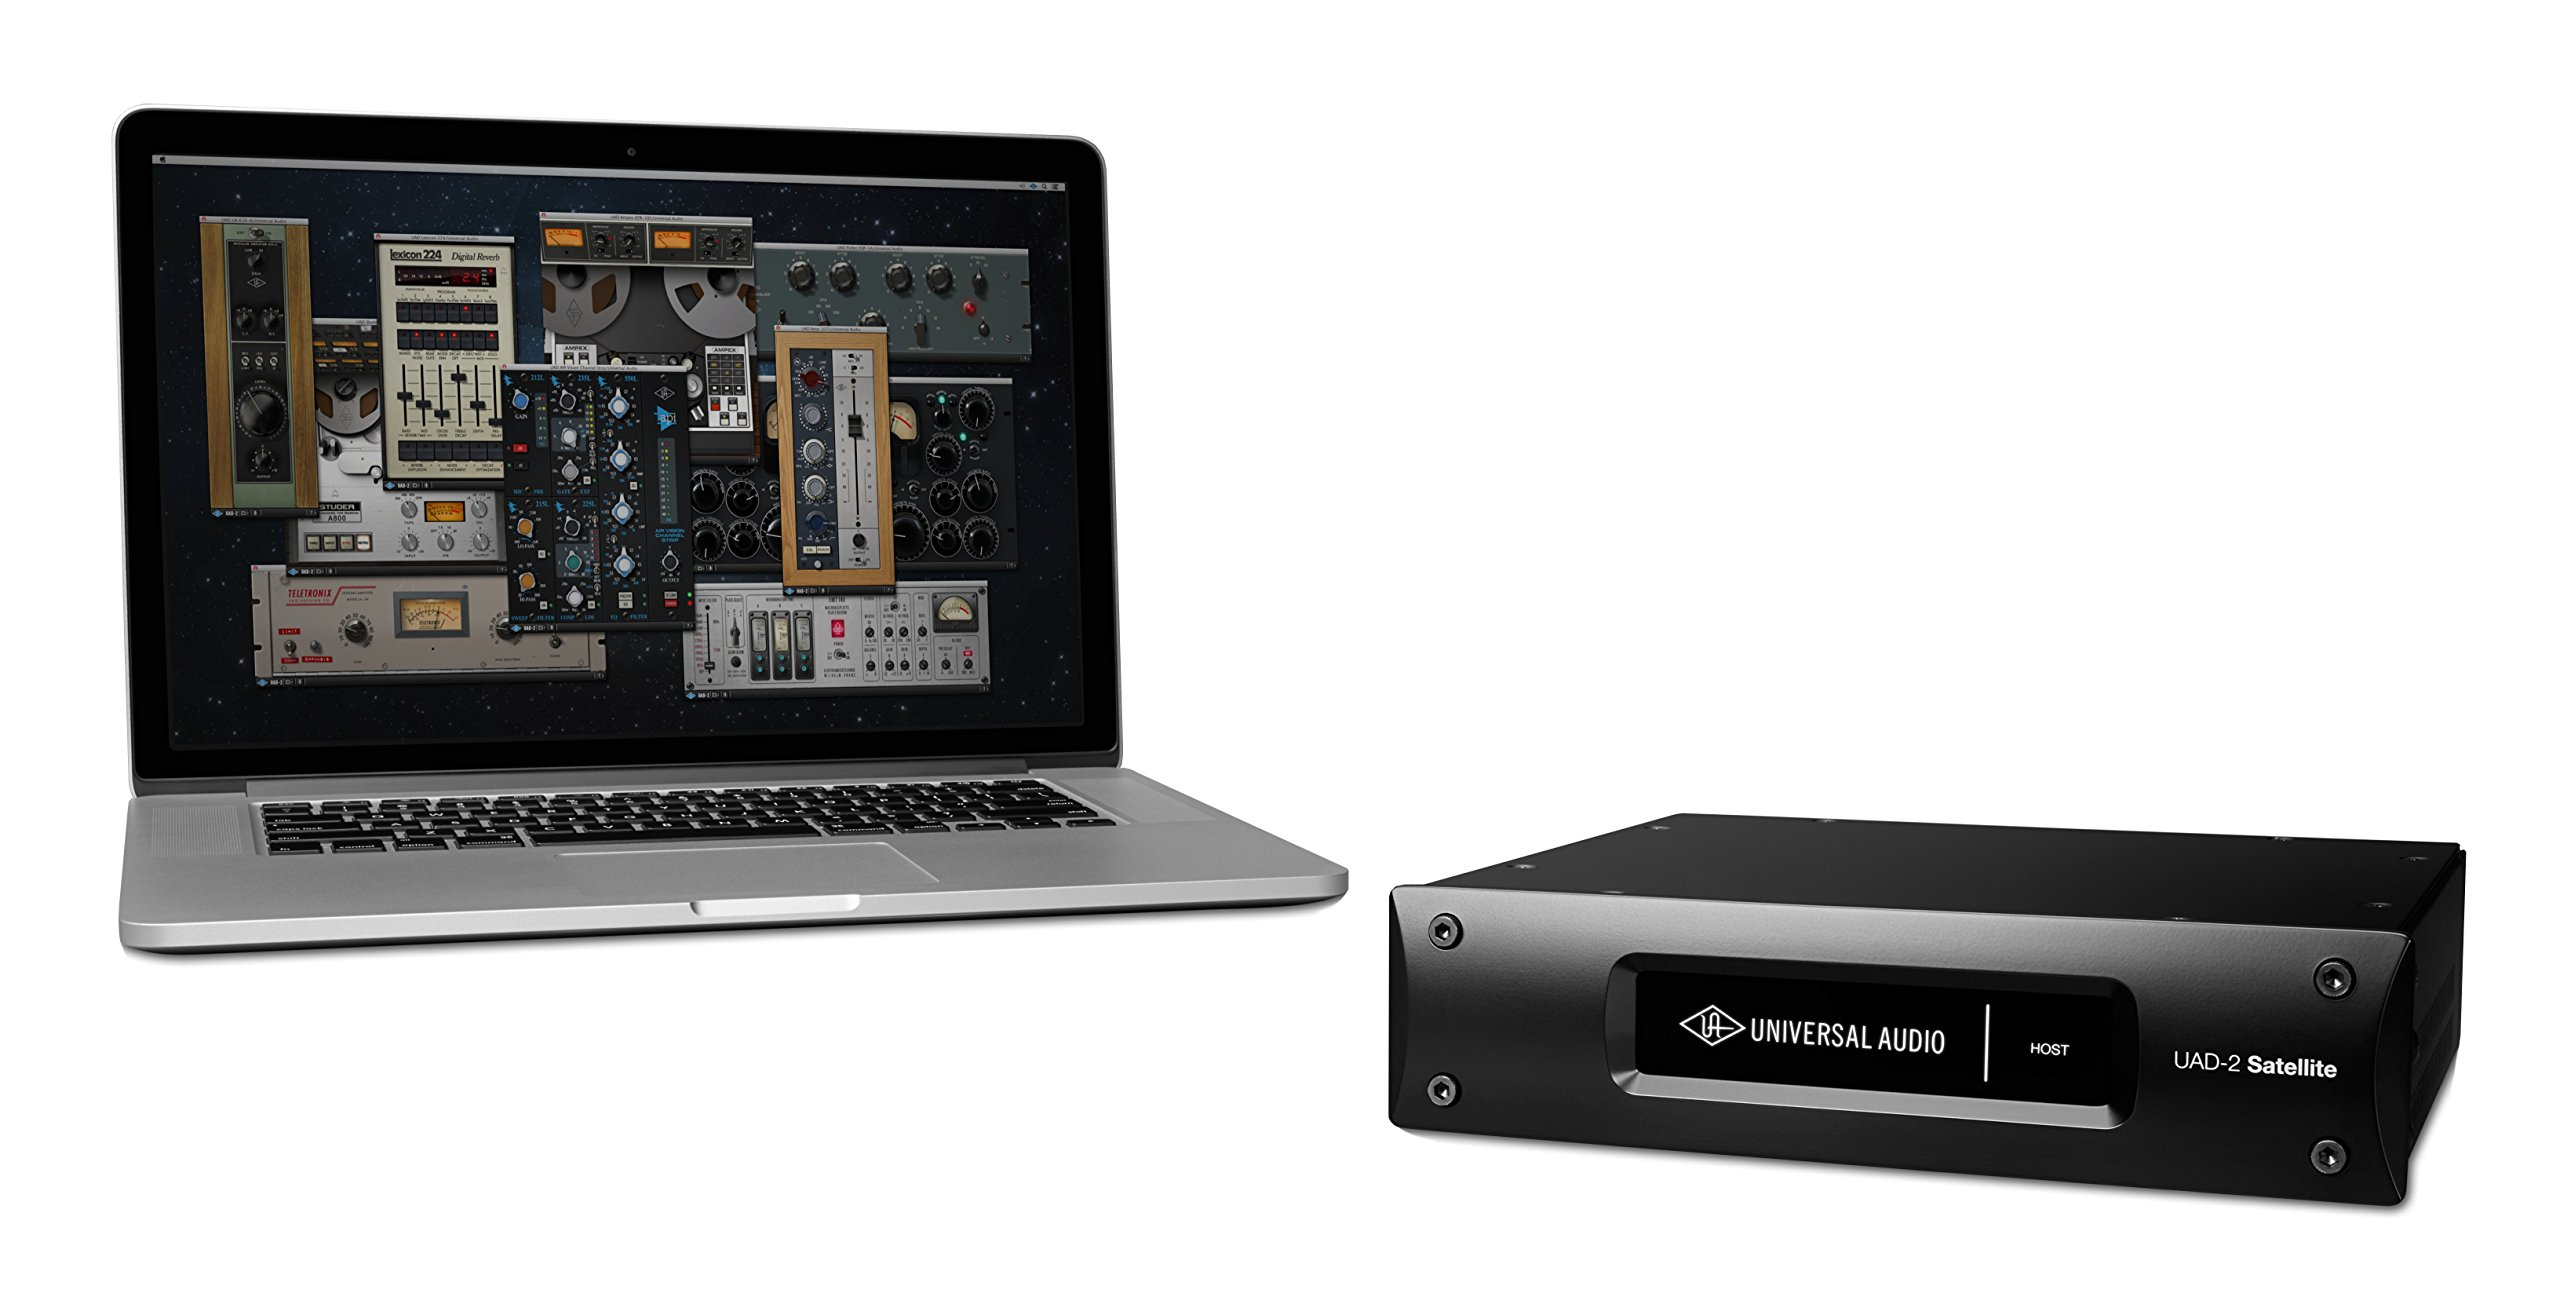 Universal Audio UAD-2 Satellite Thunderbolt Quad Core by Universal Audio